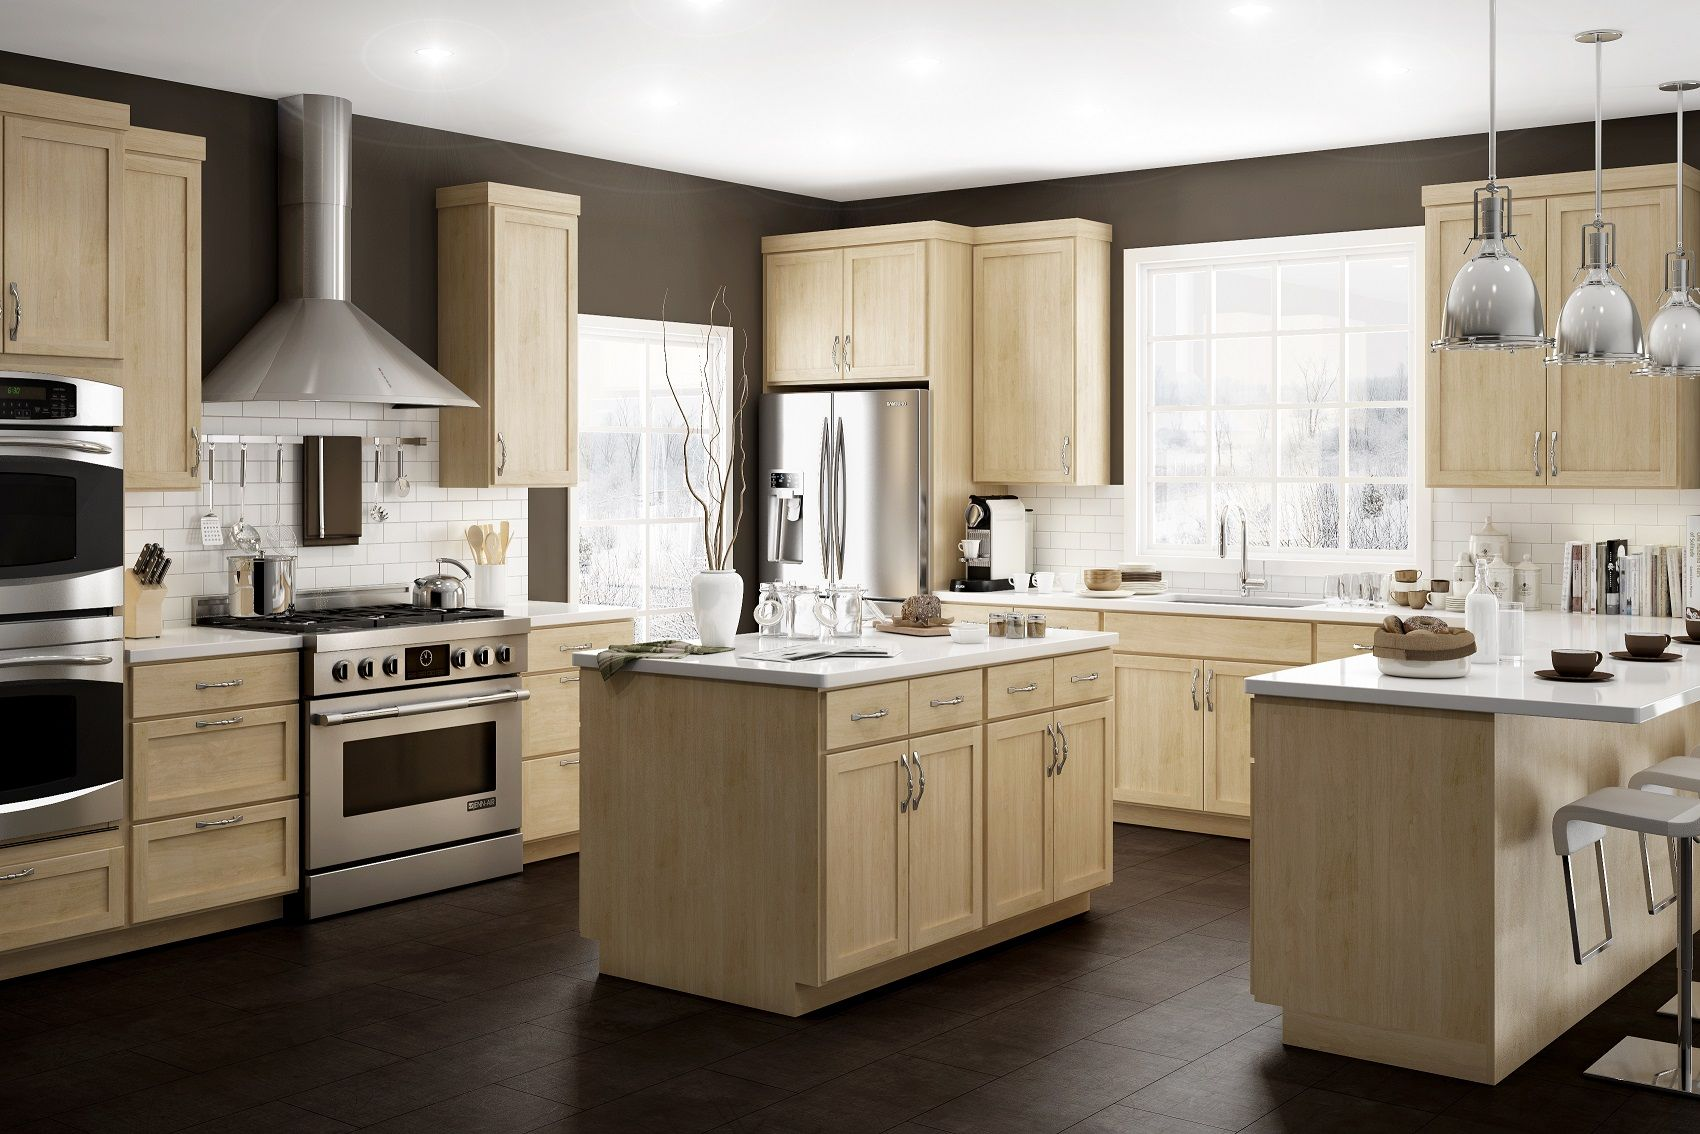 Lanz Cabinets Kcma Certified Kitchen Cabinet Manufacturers Hearthstone Kitchen Cabinets